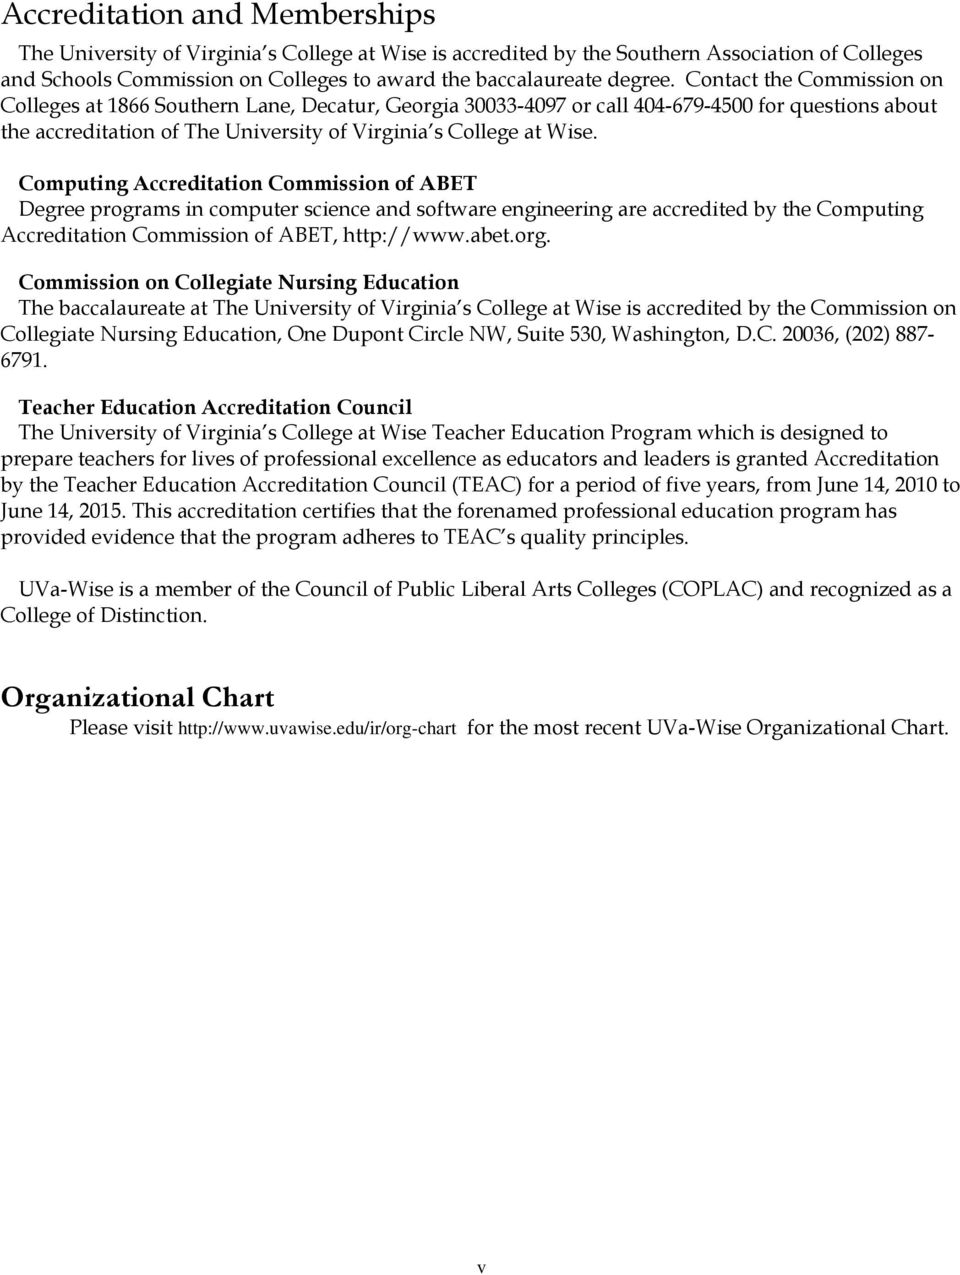 Computing Accreditation Commission of ABET Degree programs in computer science and software engineering are accredited by the Computing Accreditation Commission of ABET, http://www.abet.org.